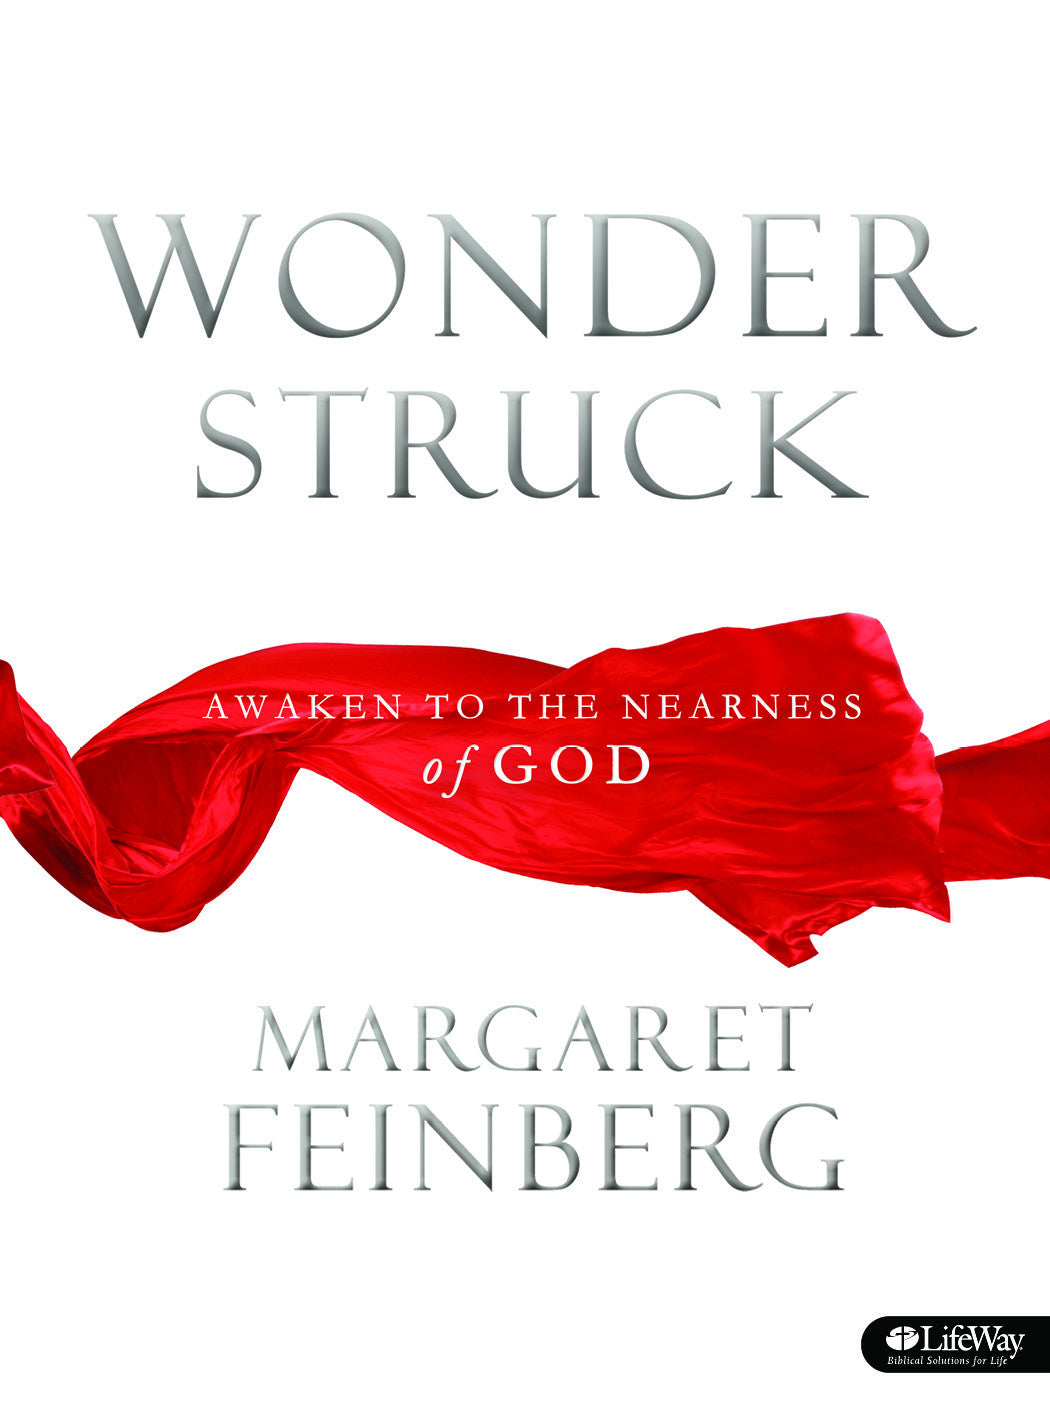 Wonderstruck: Awaken to the Nearness of God 7-Session DVD Bible Study Kit